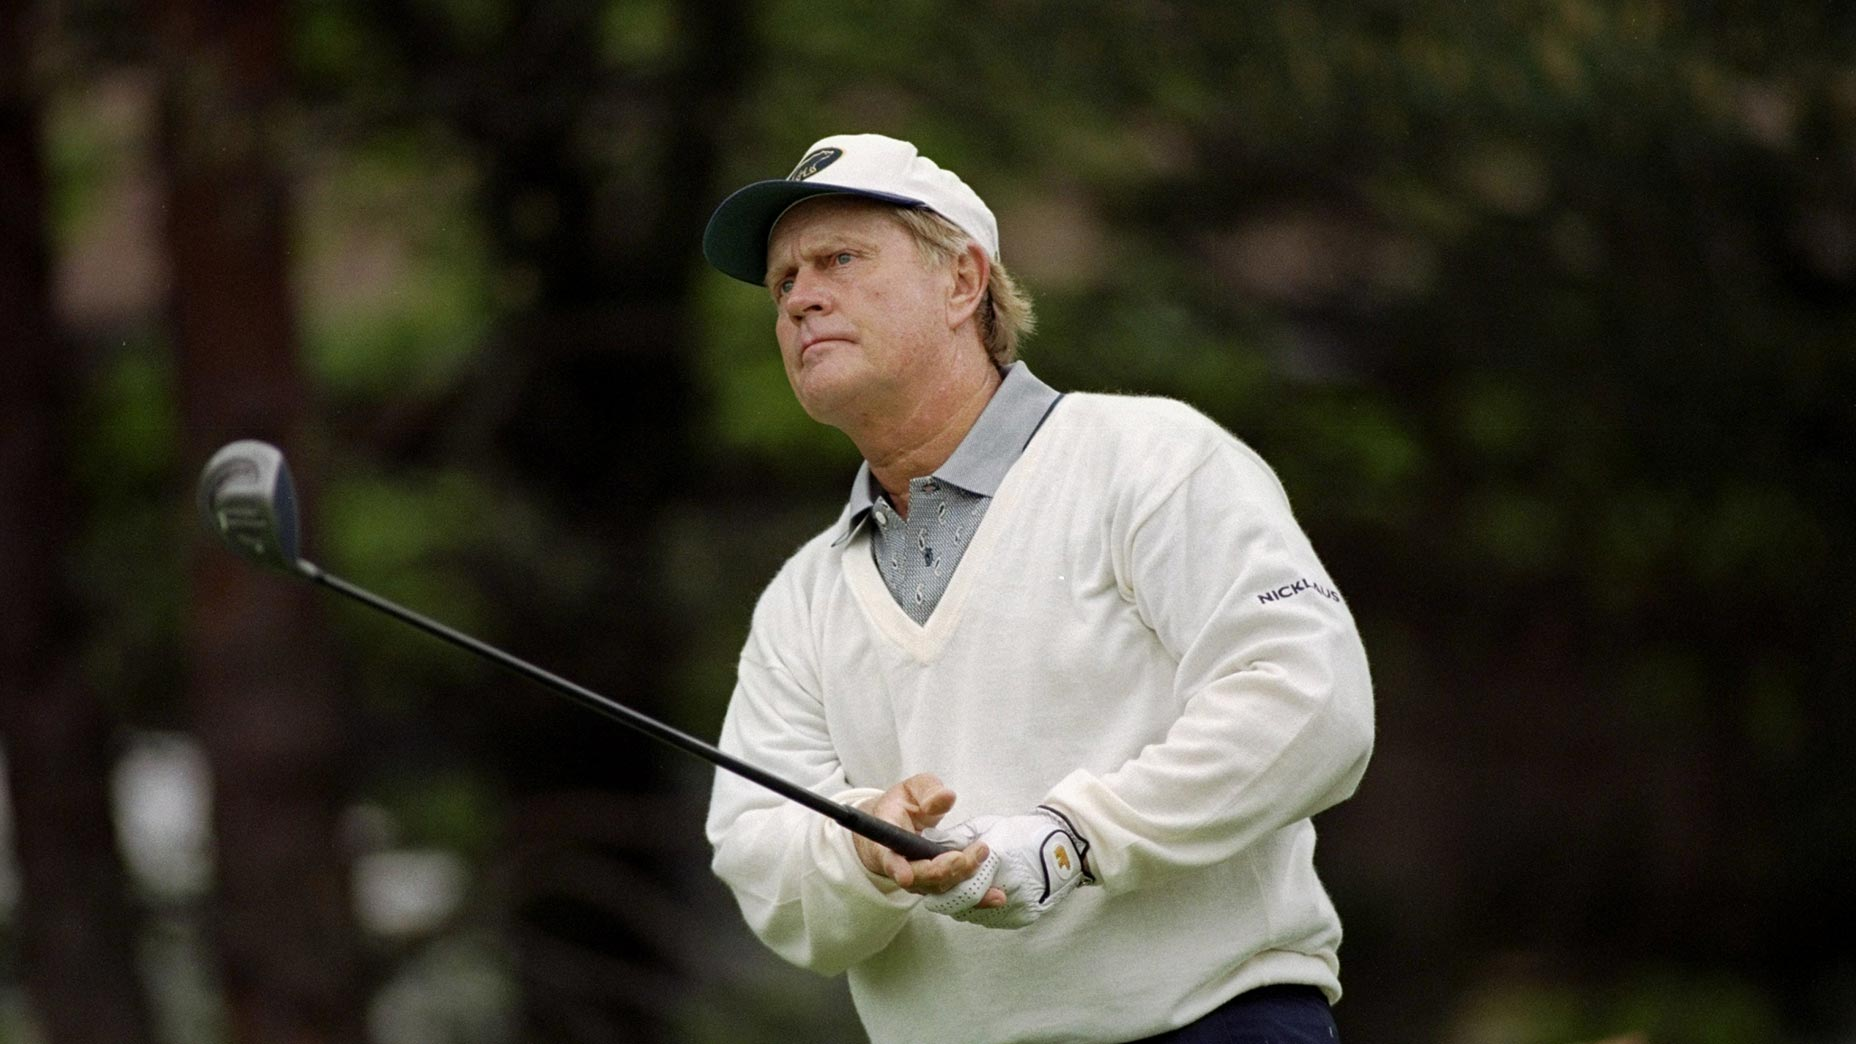 jack nicklaus holds driver after swing